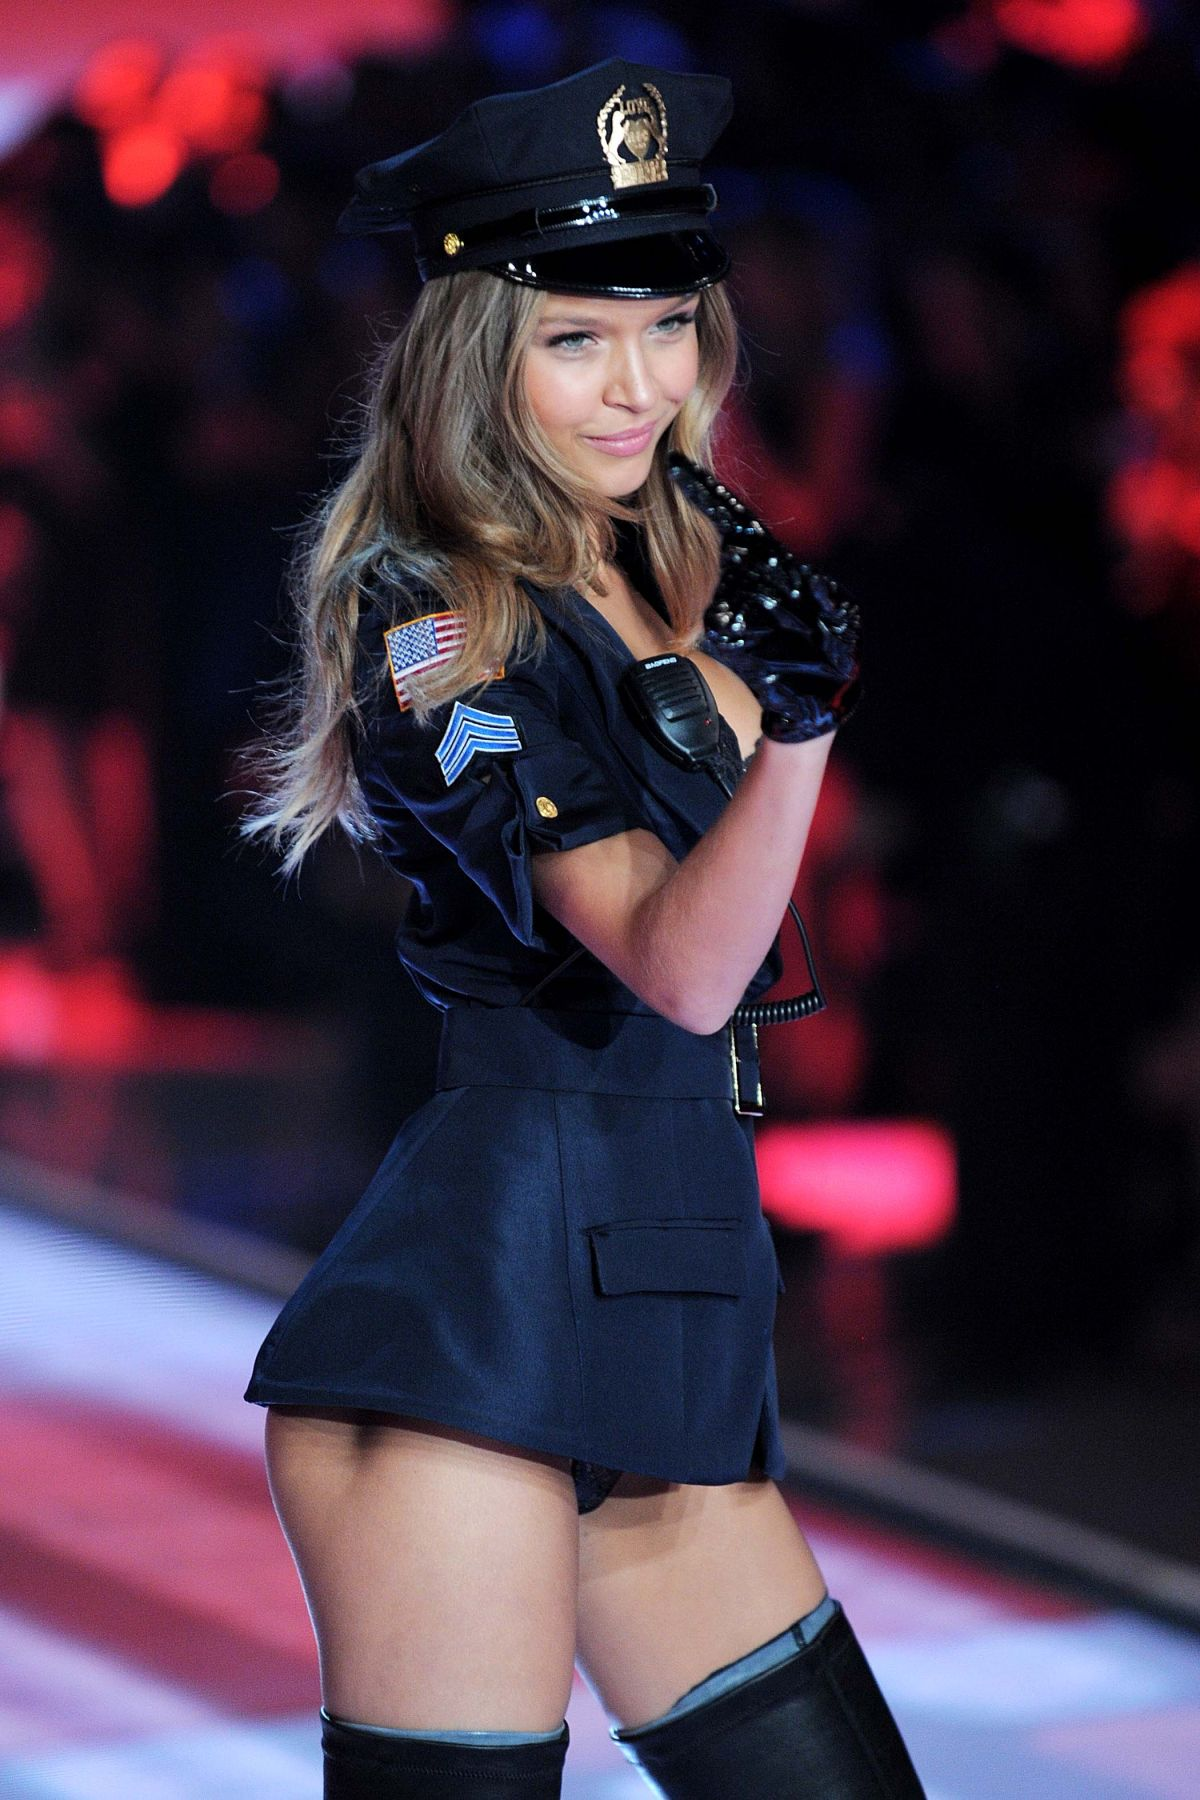 2015 S Most Popular Halloween Costumes By State Map: JOSEPHINE SKRIVER At Victoria's Secret 2015 Fashion Show